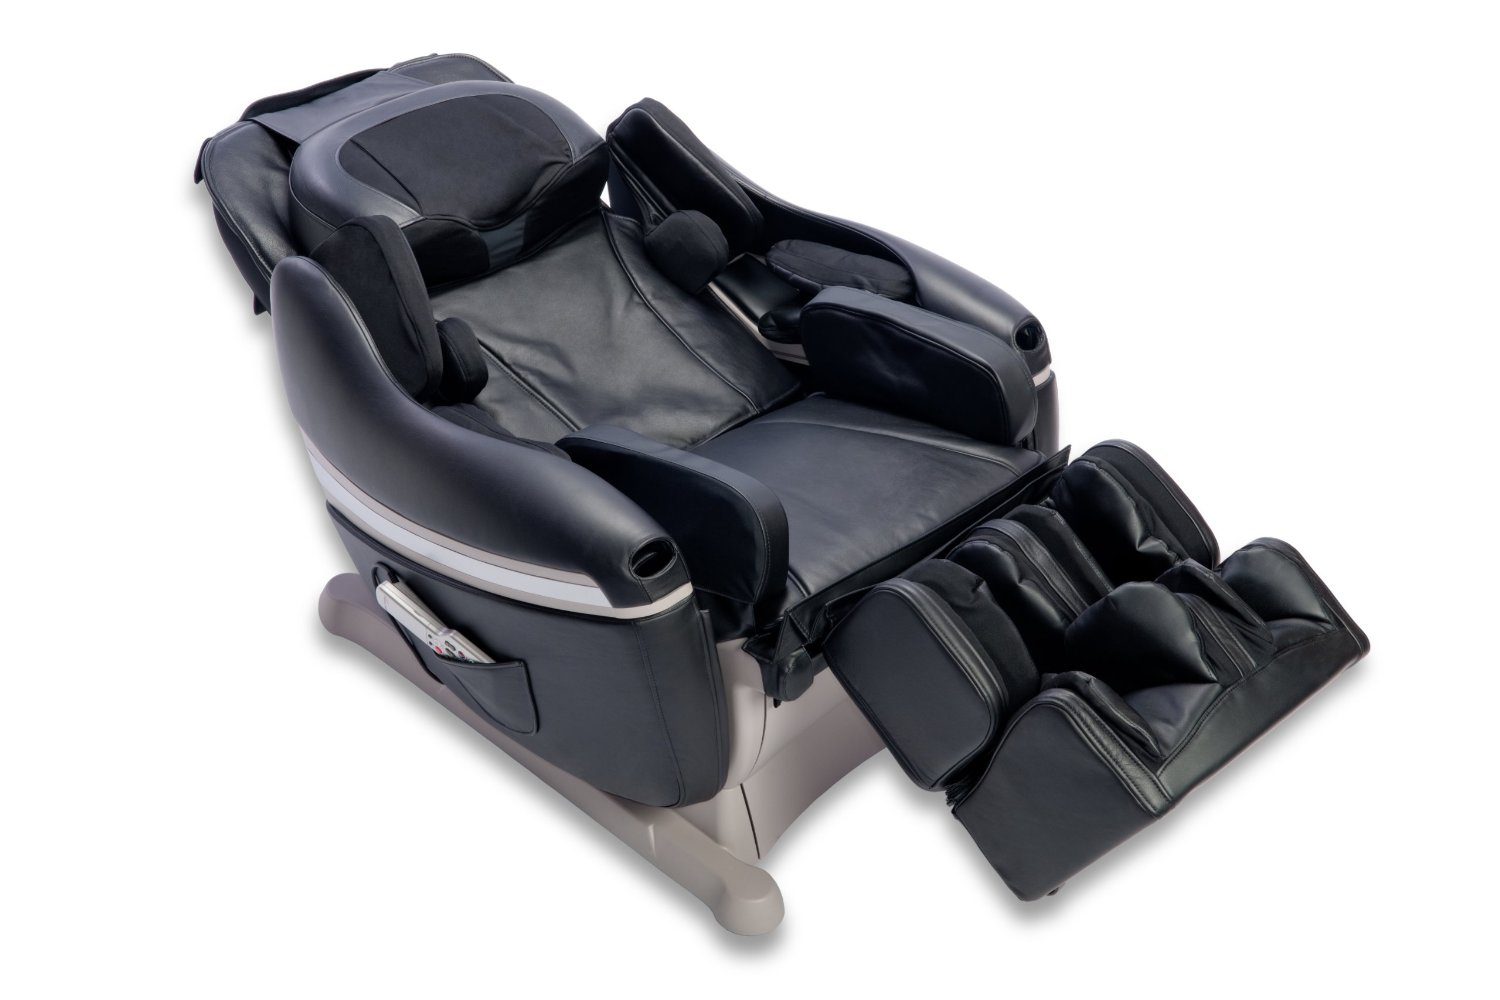 Inada dreamwave massage chair review for Chair zero review